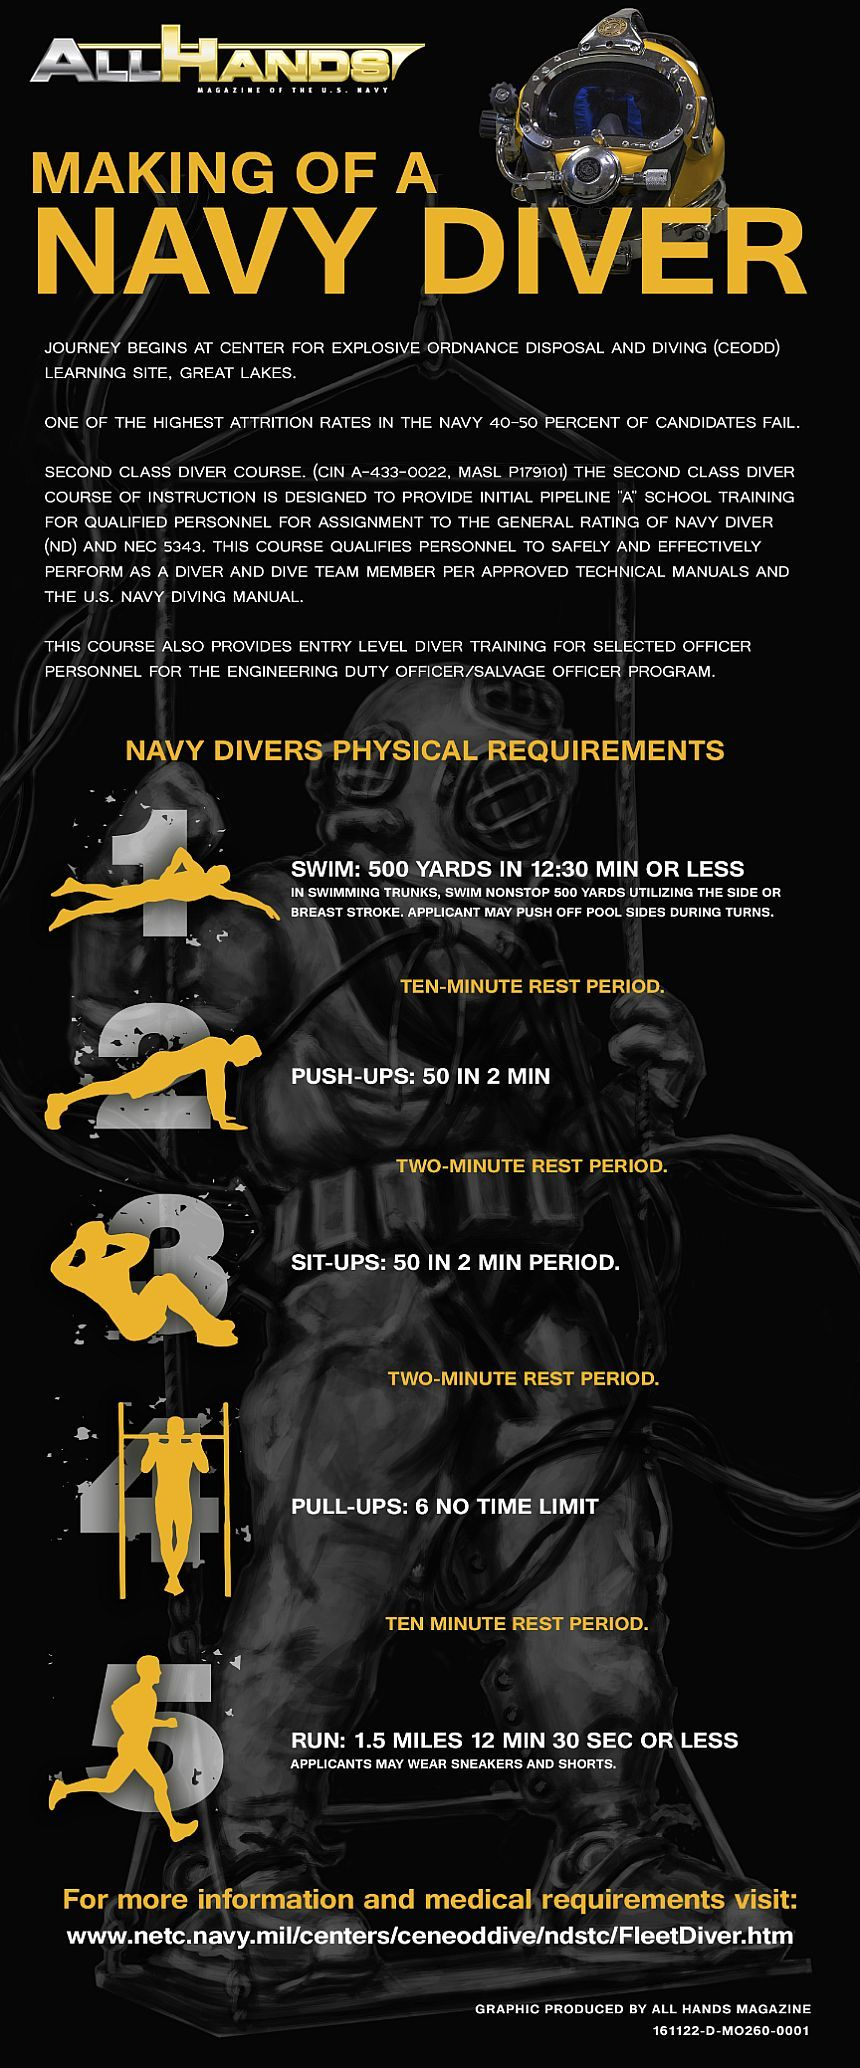 Infographic for basic physical requirements to become a Navy